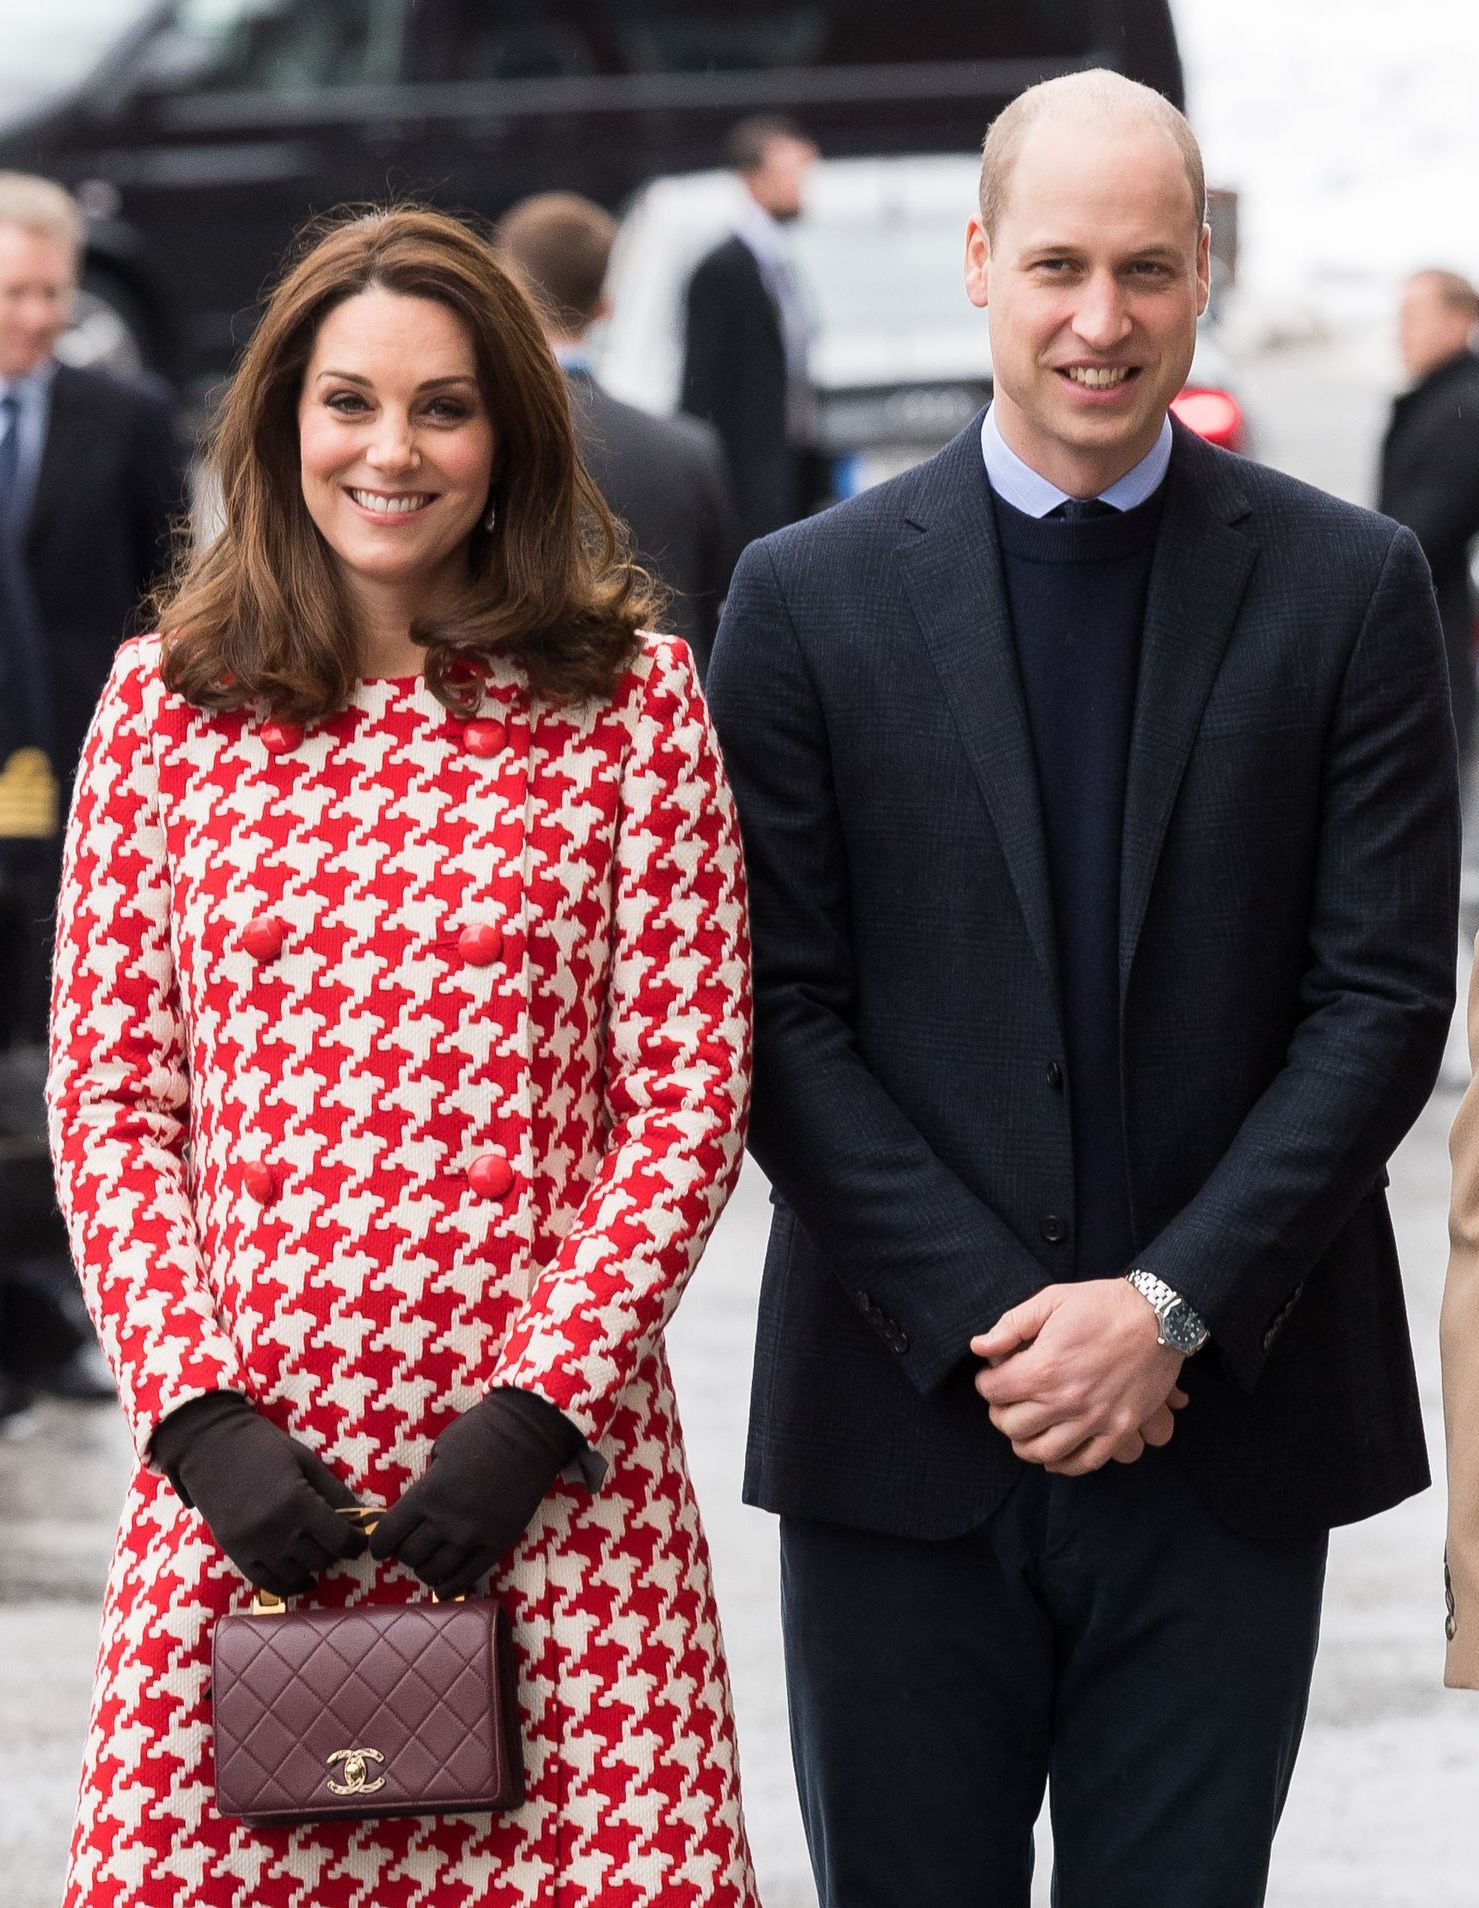 Catherine, Duchess of Cambridge and Prince William, Duke of Cambridge on their royal visit to Stockholm, Sweden on January 31, 2018.